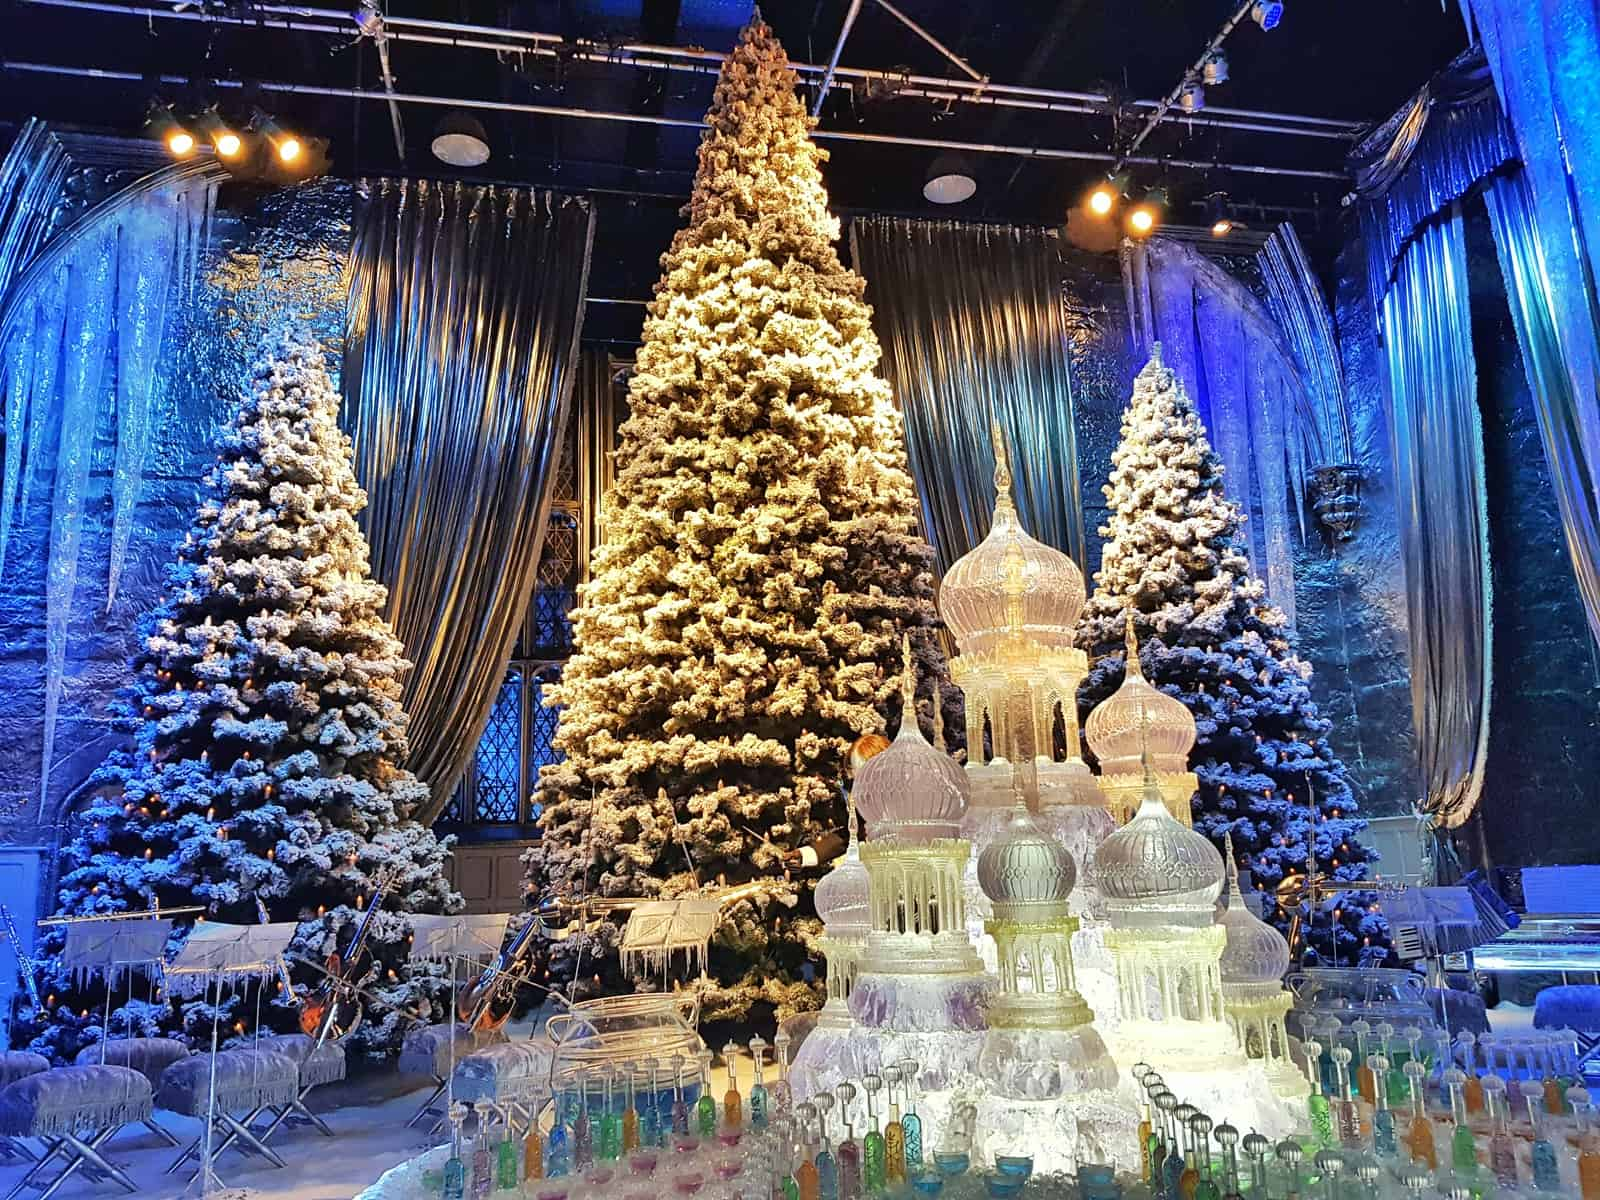 Christmas trees behind ornate ice sculpture